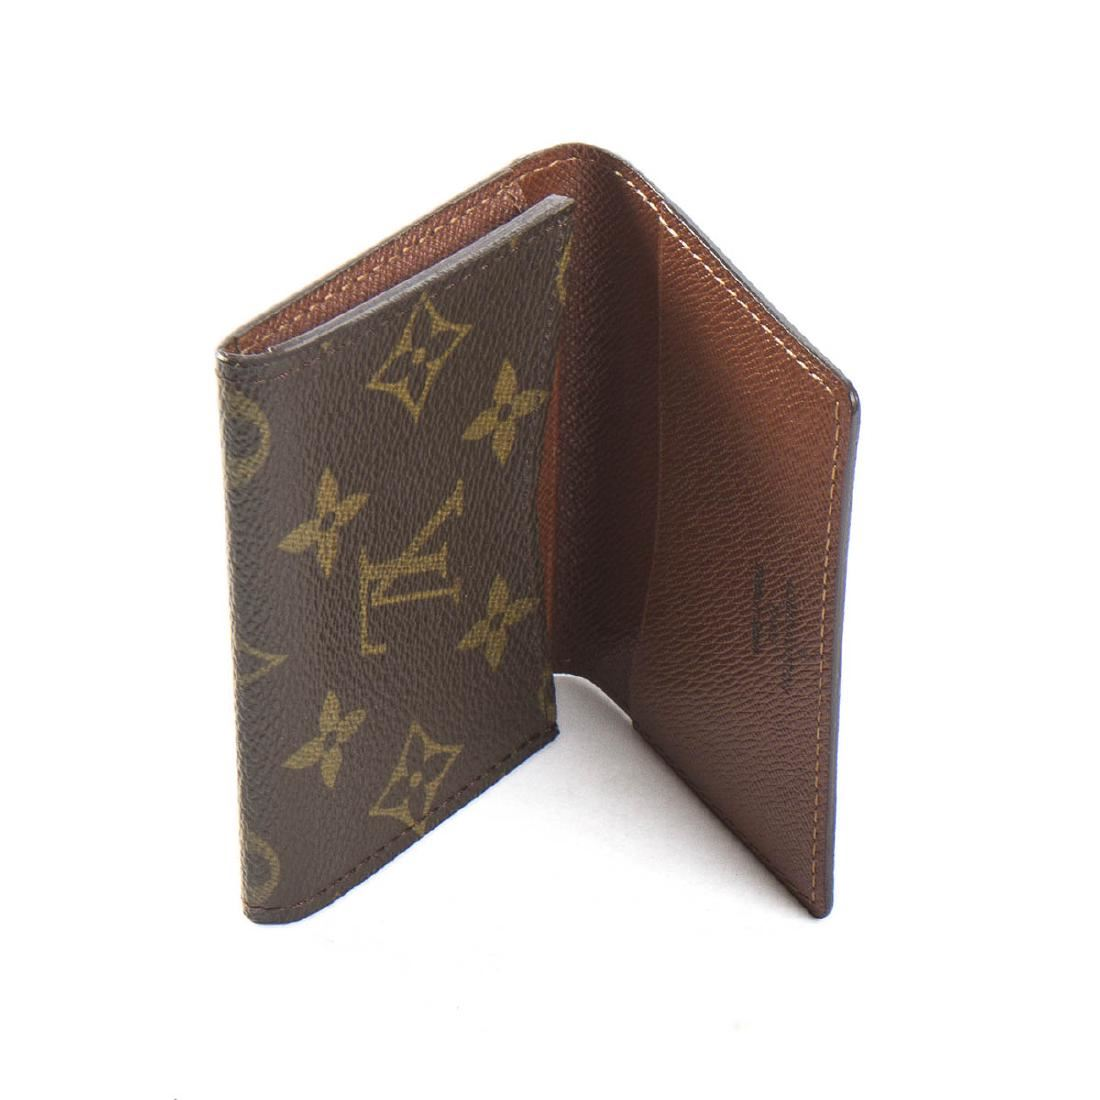 3776c065a0e3 ... Image 3   Louis Vuitton Business Card Holder in Brown Monogram